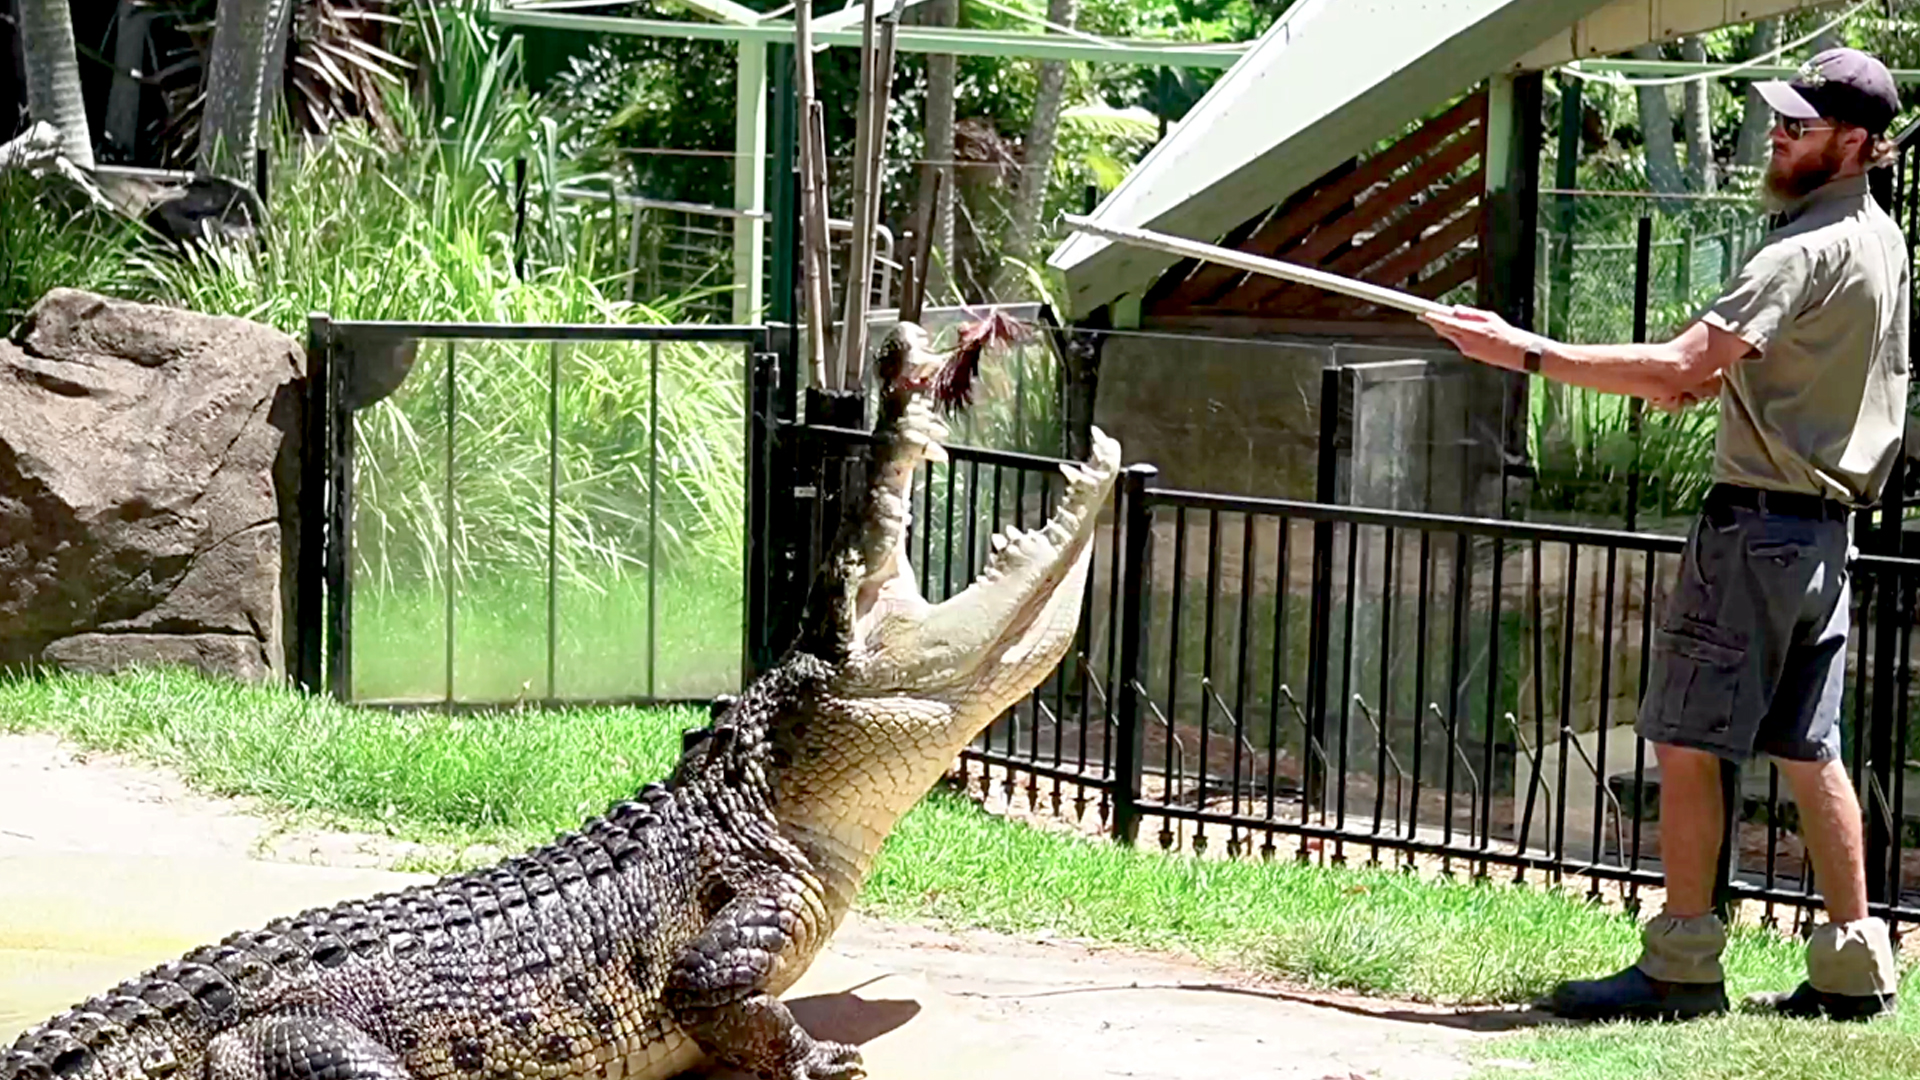 VIDEO: Shrek-ed It: Monster Croc Named After Movie Ogre's Terrifying Mealtime